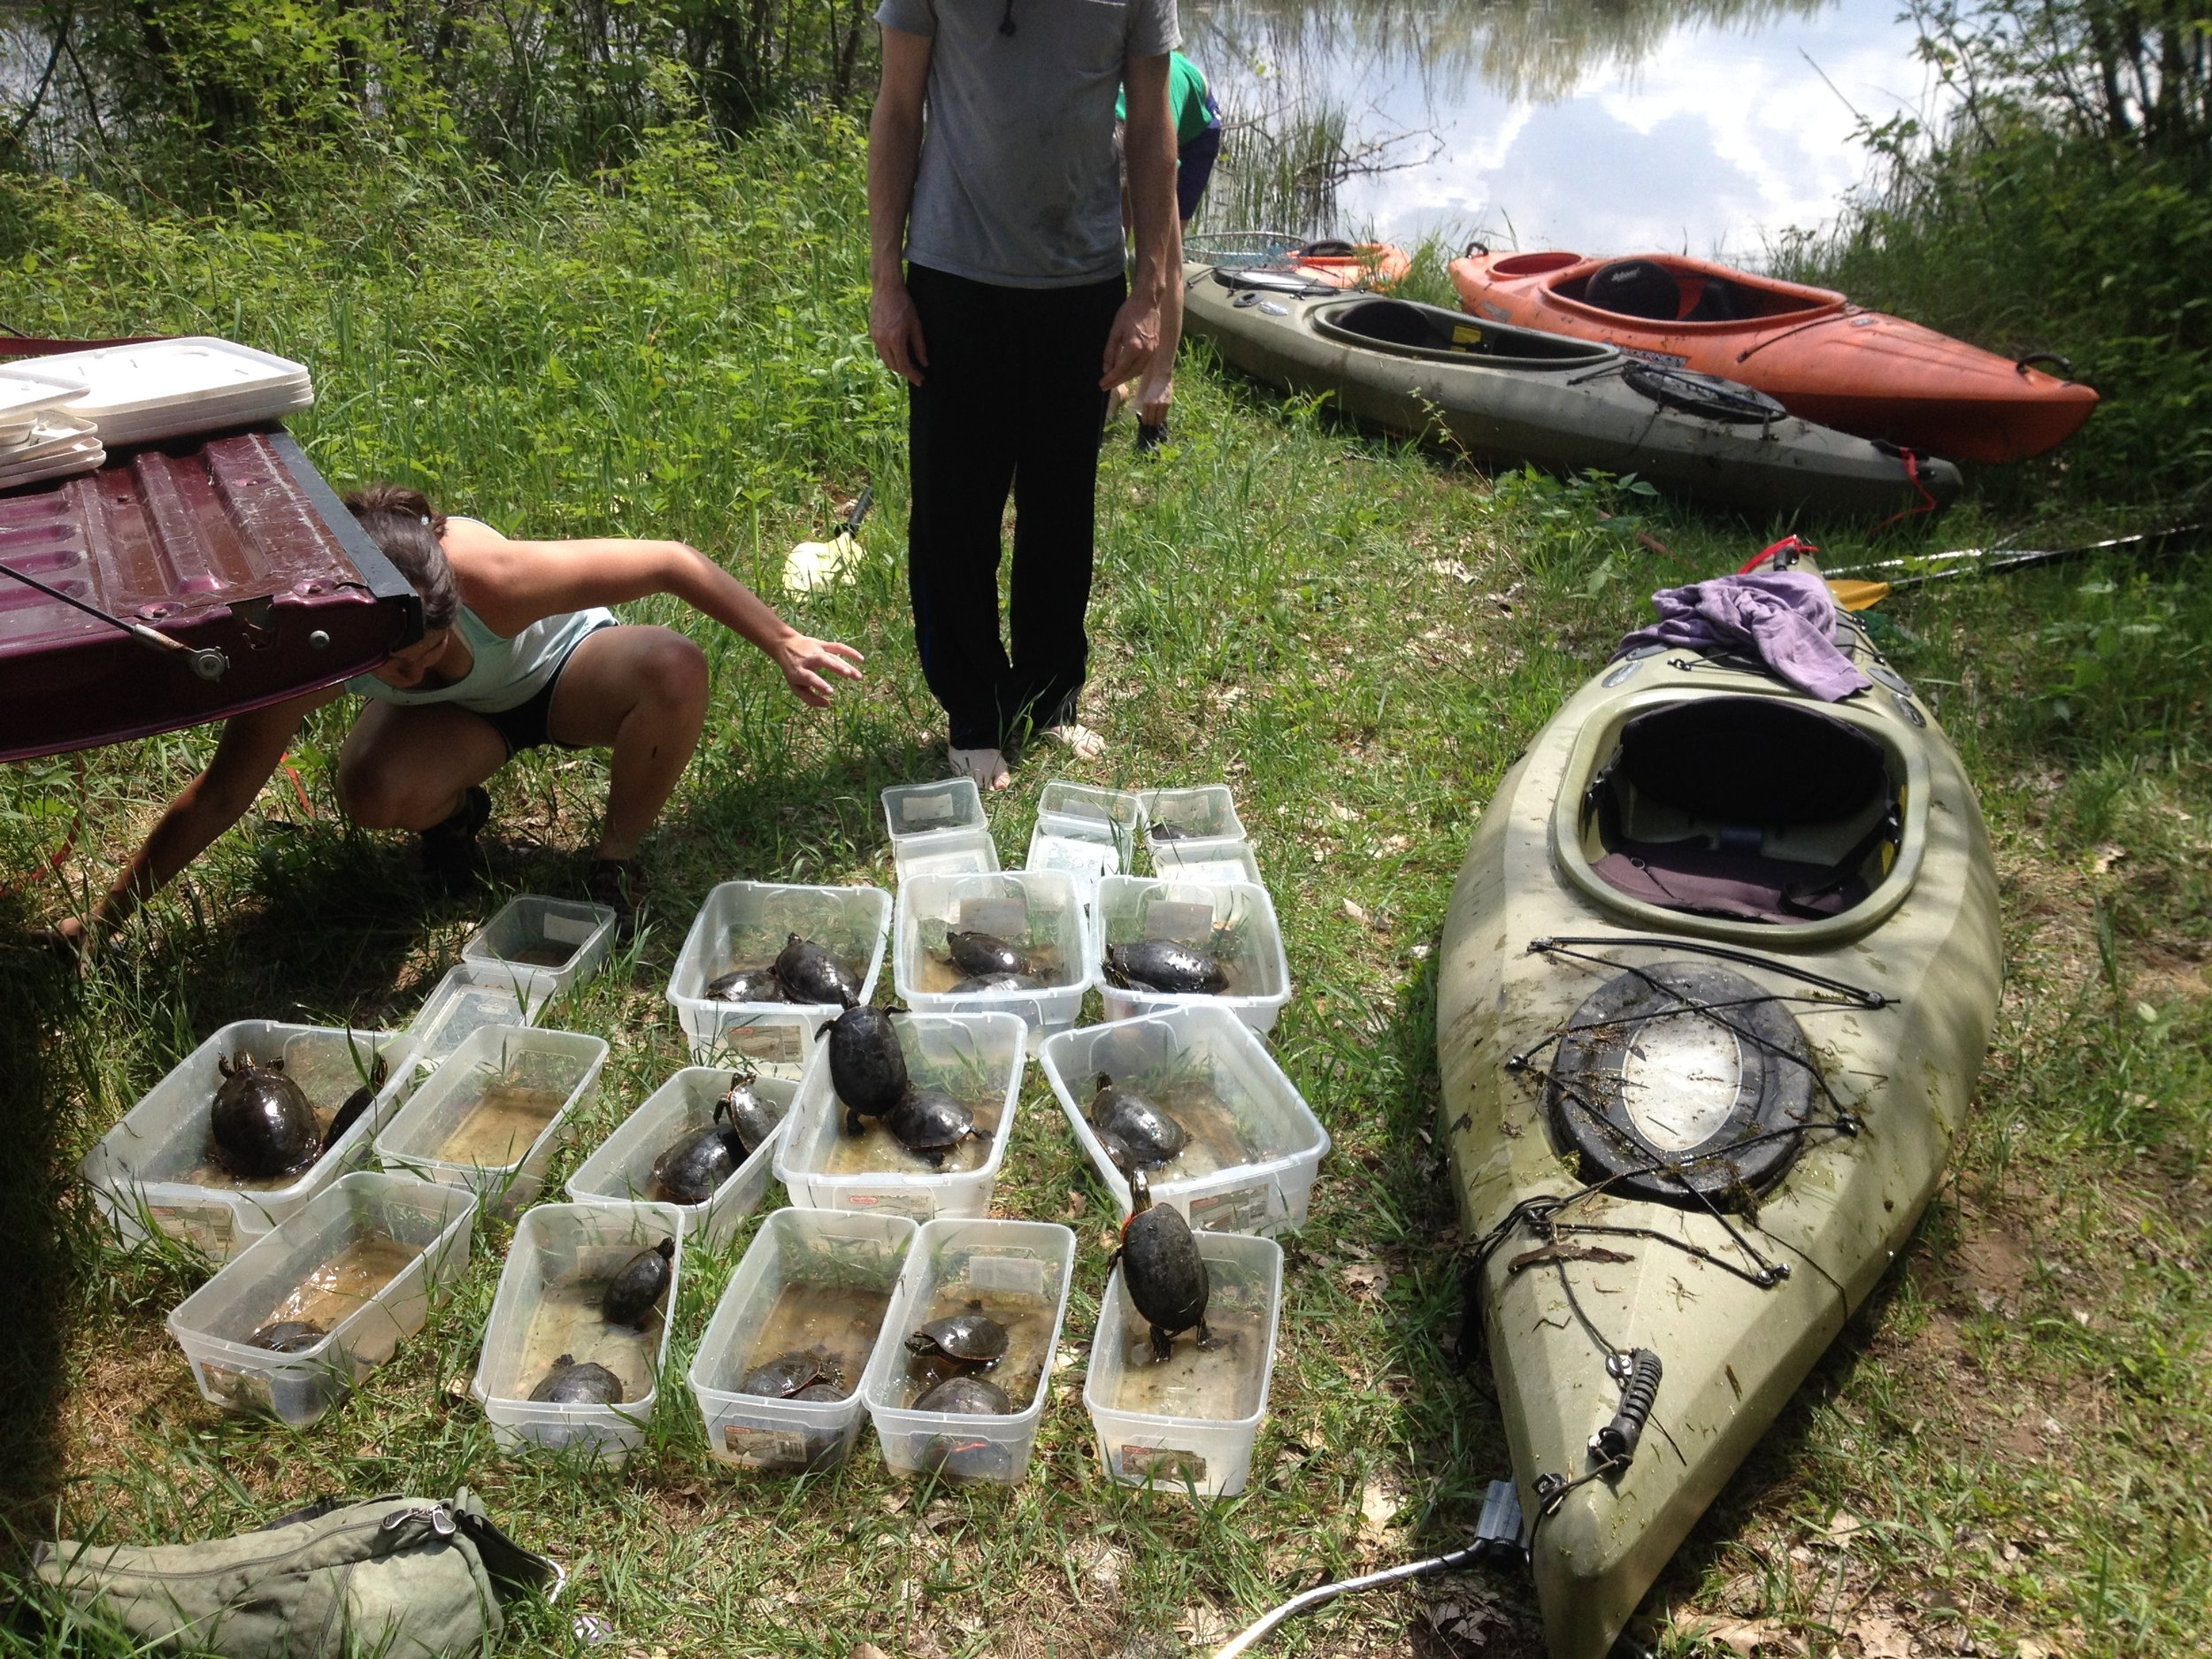 Bins of turtles next to a kayak after a successful morning of capturing